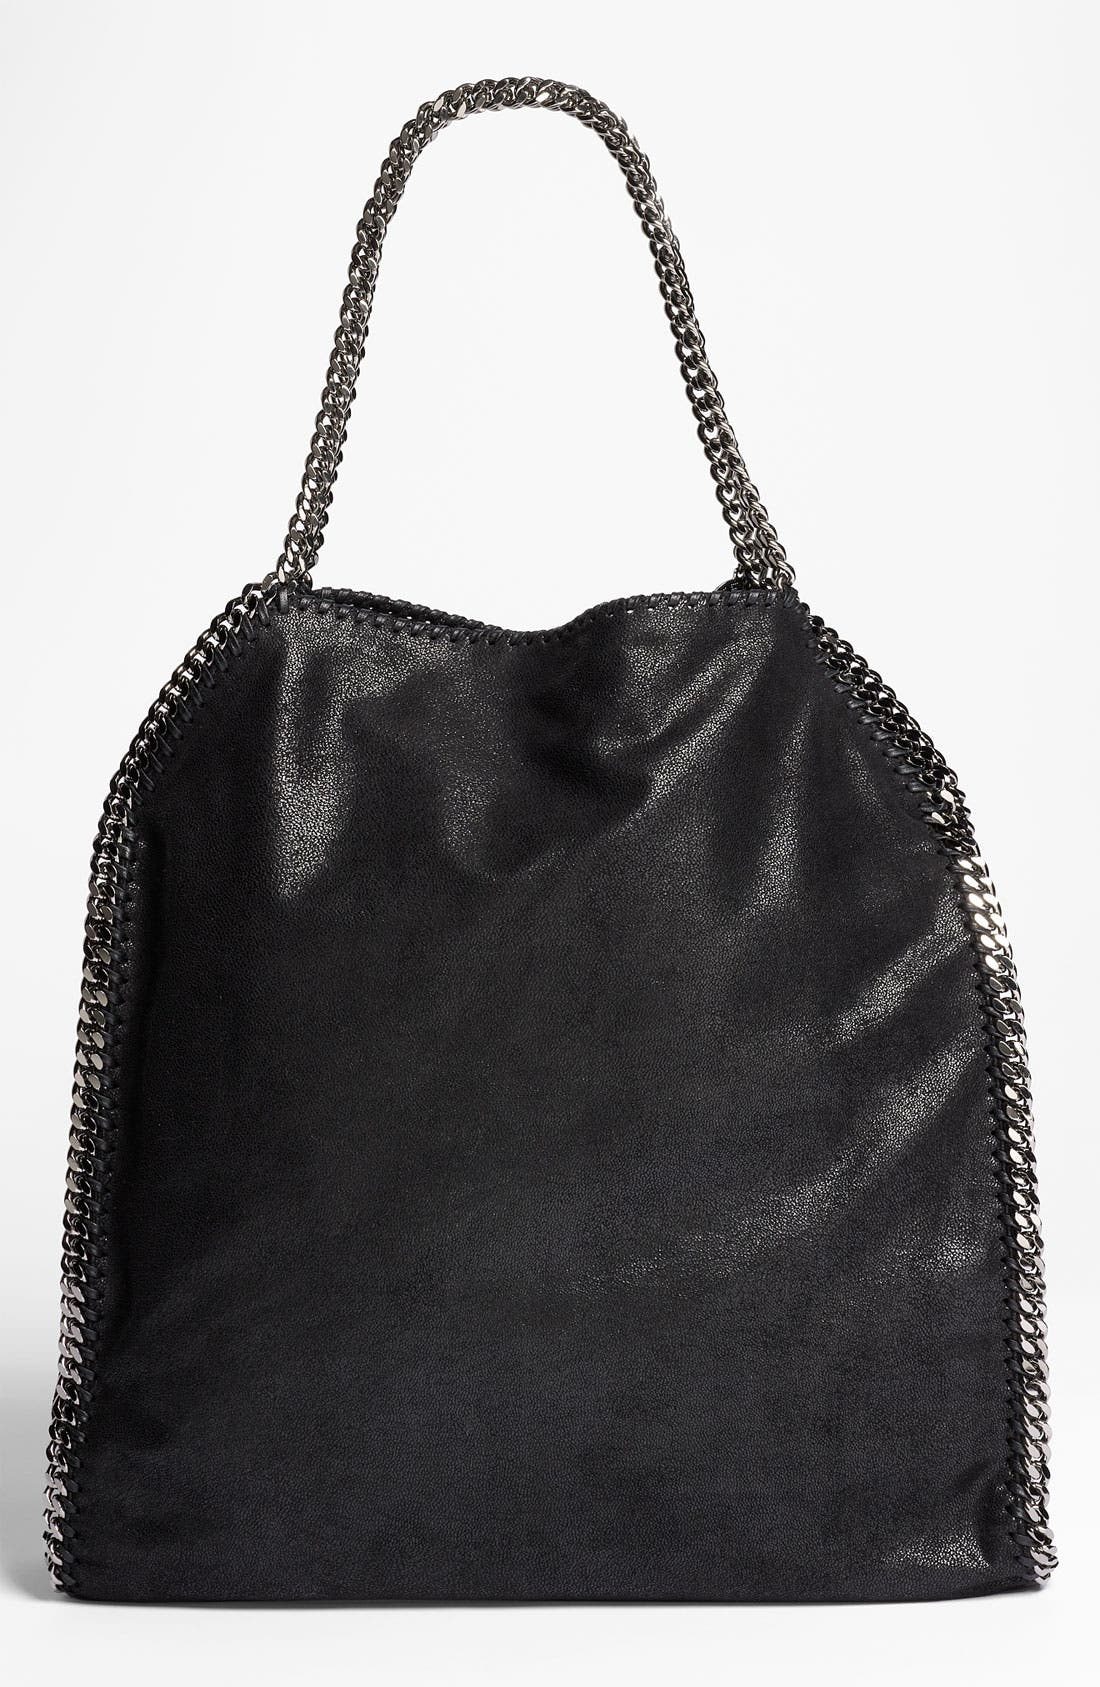 STELLA MCCARTNEY,                             'Large Falabella - Shaggy Deer' Faux Leather Tote,                             Alternate thumbnail 3, color,                             001